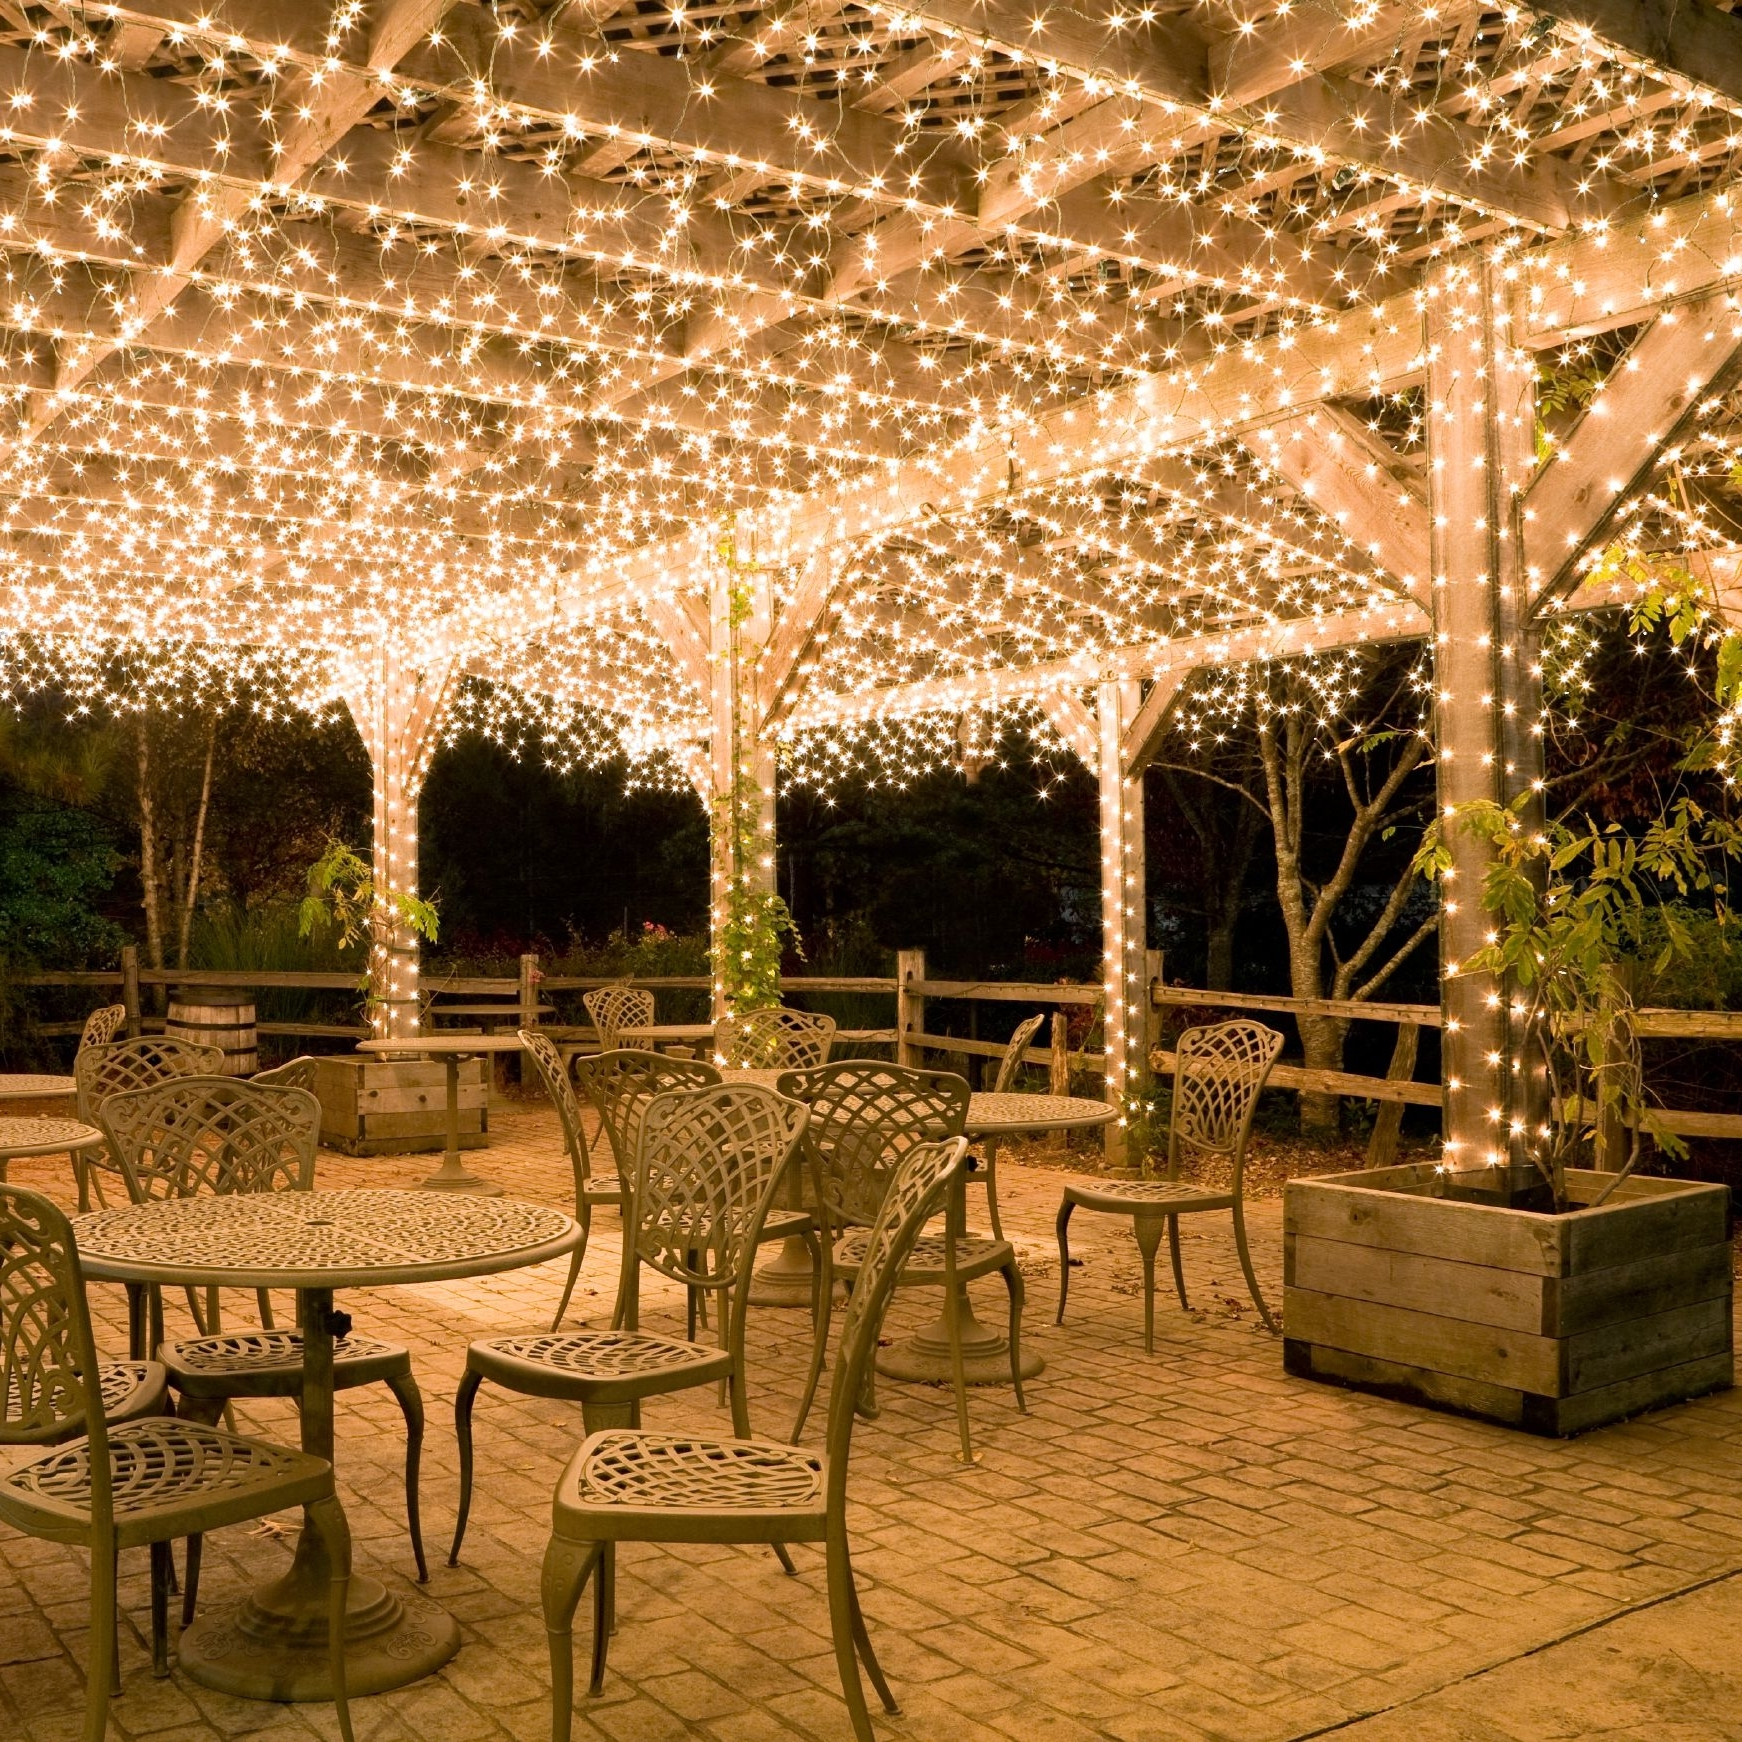 Most Recent Hang White Icicle Lights To Create Magical Outdoor Lighting (View 8 of 20)